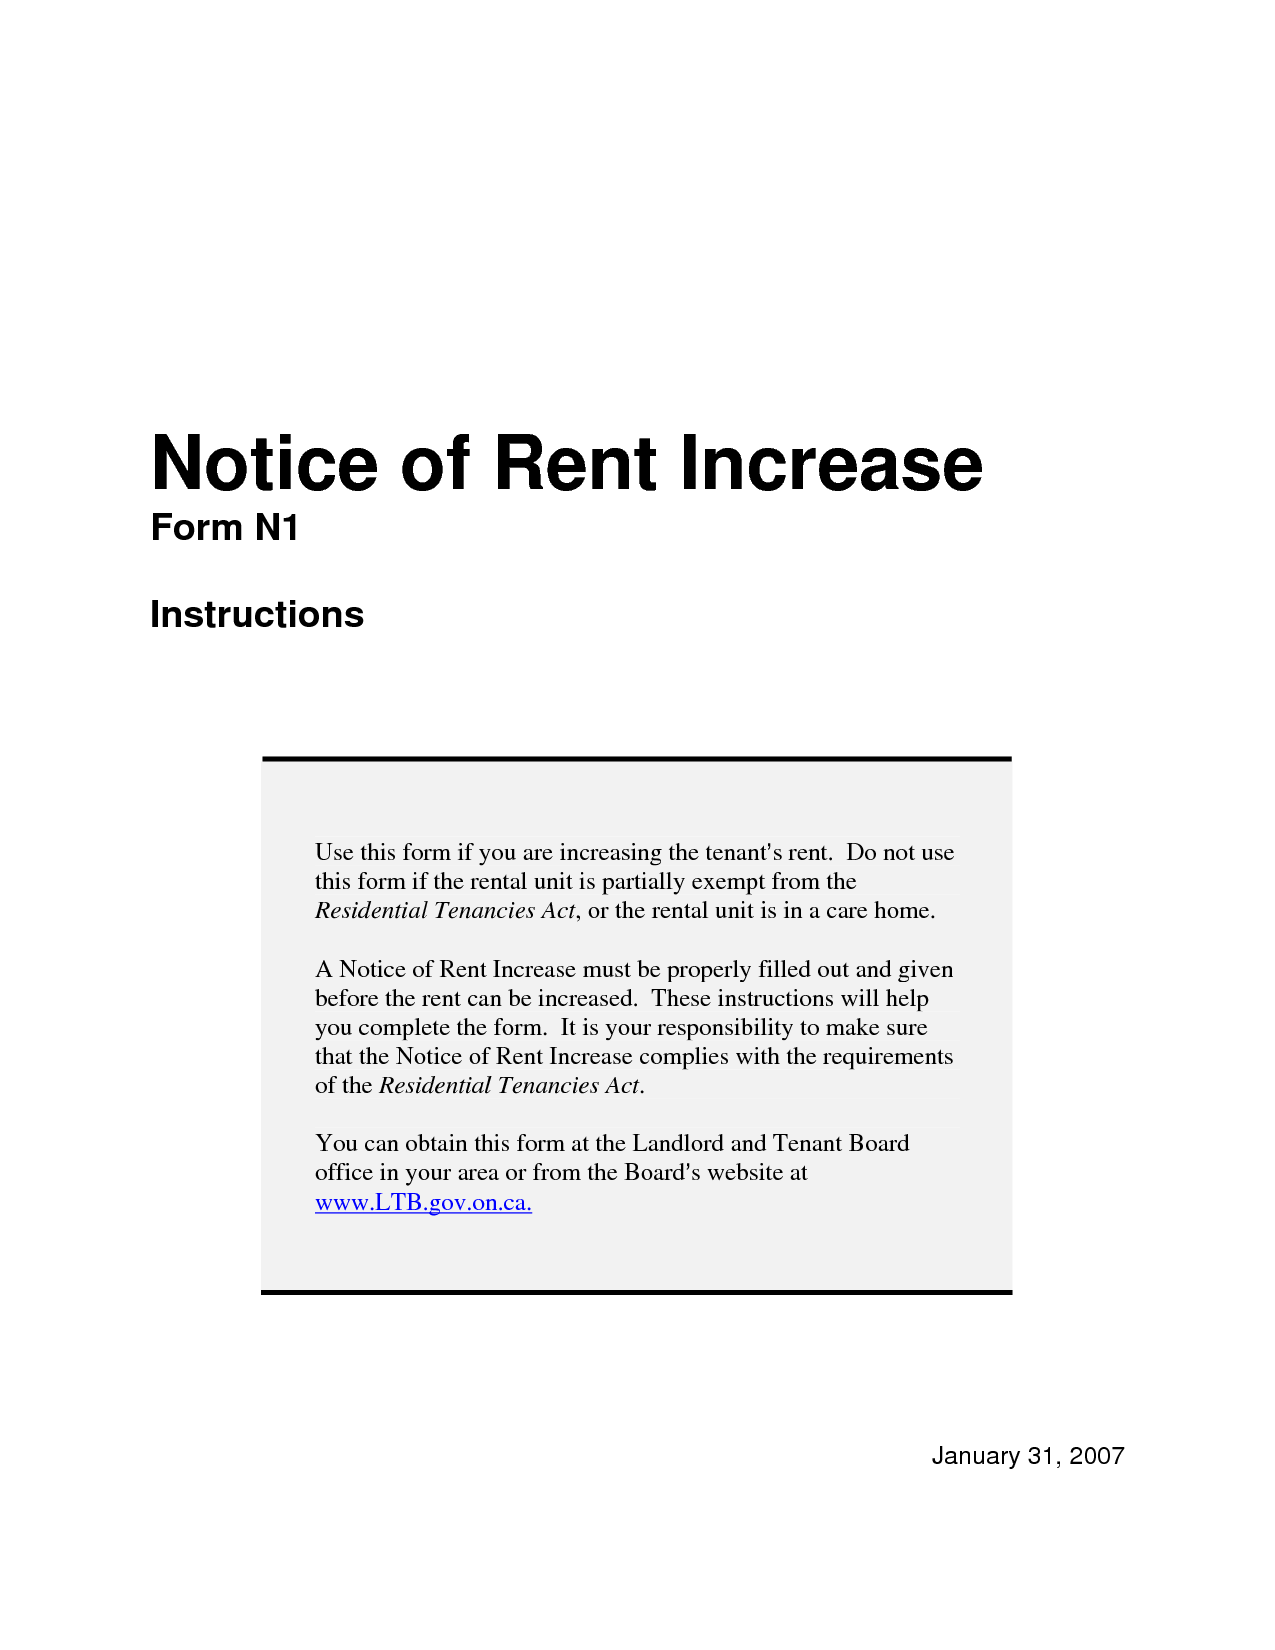 Notice of rent increase sample google search formal letters notice of rent increase sample google search expocarfo Image collections